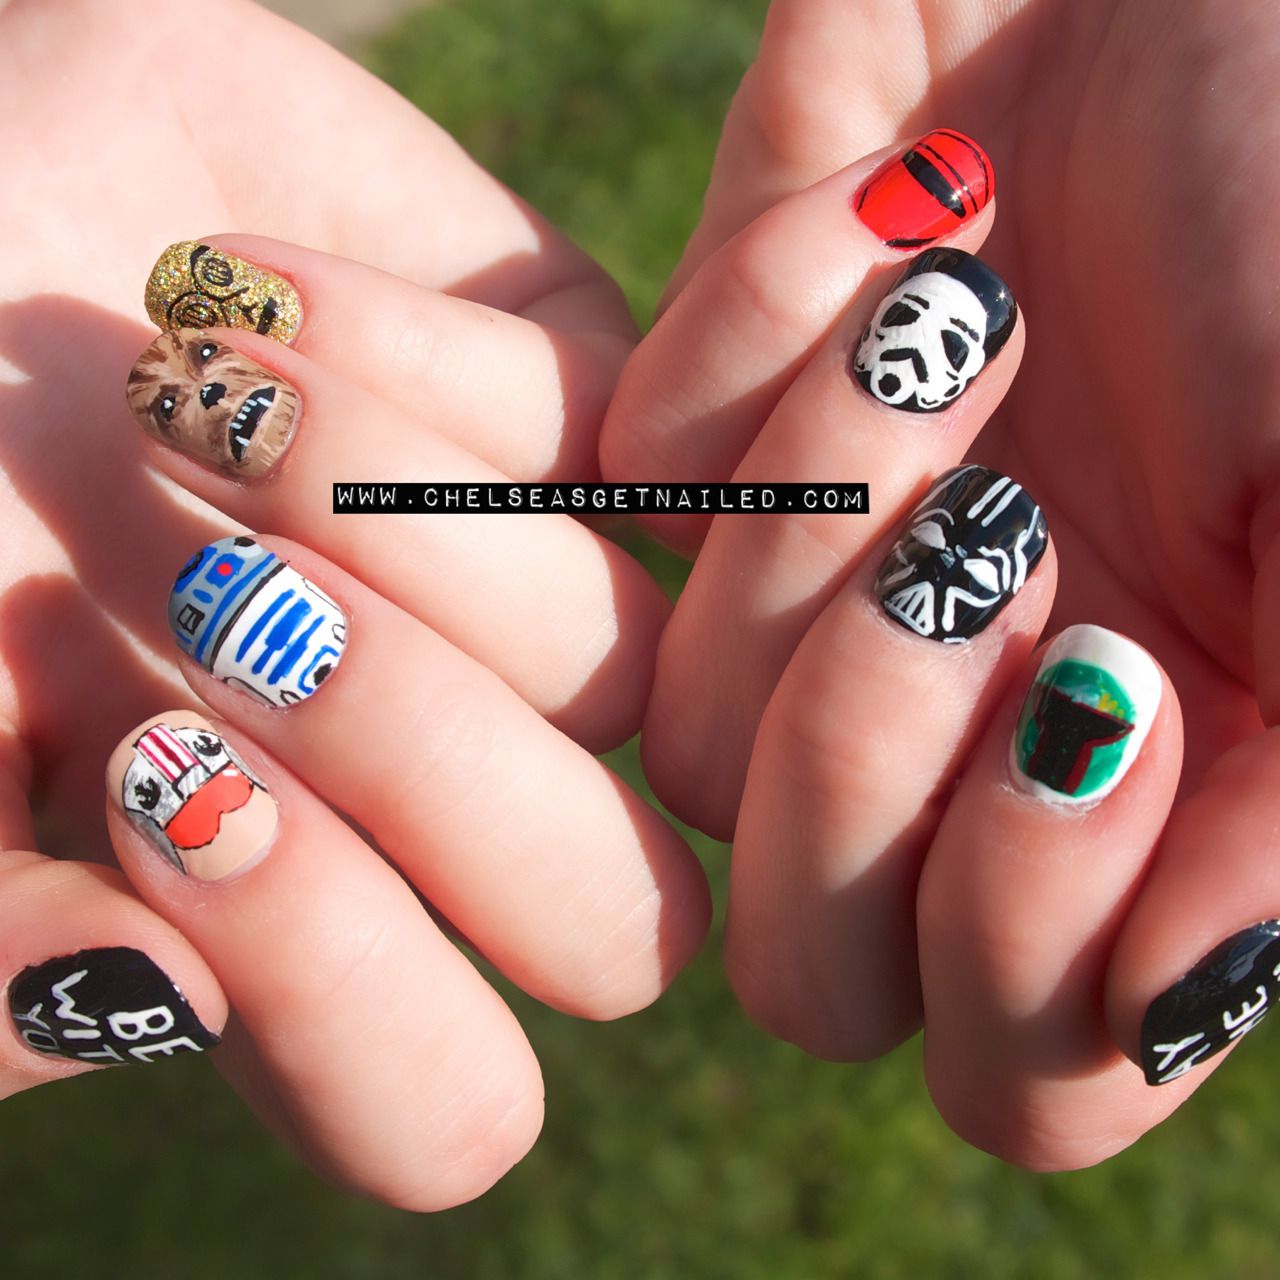 Happy Star Wars day!  http://chelseasgetnailed.com/star-wars-day/